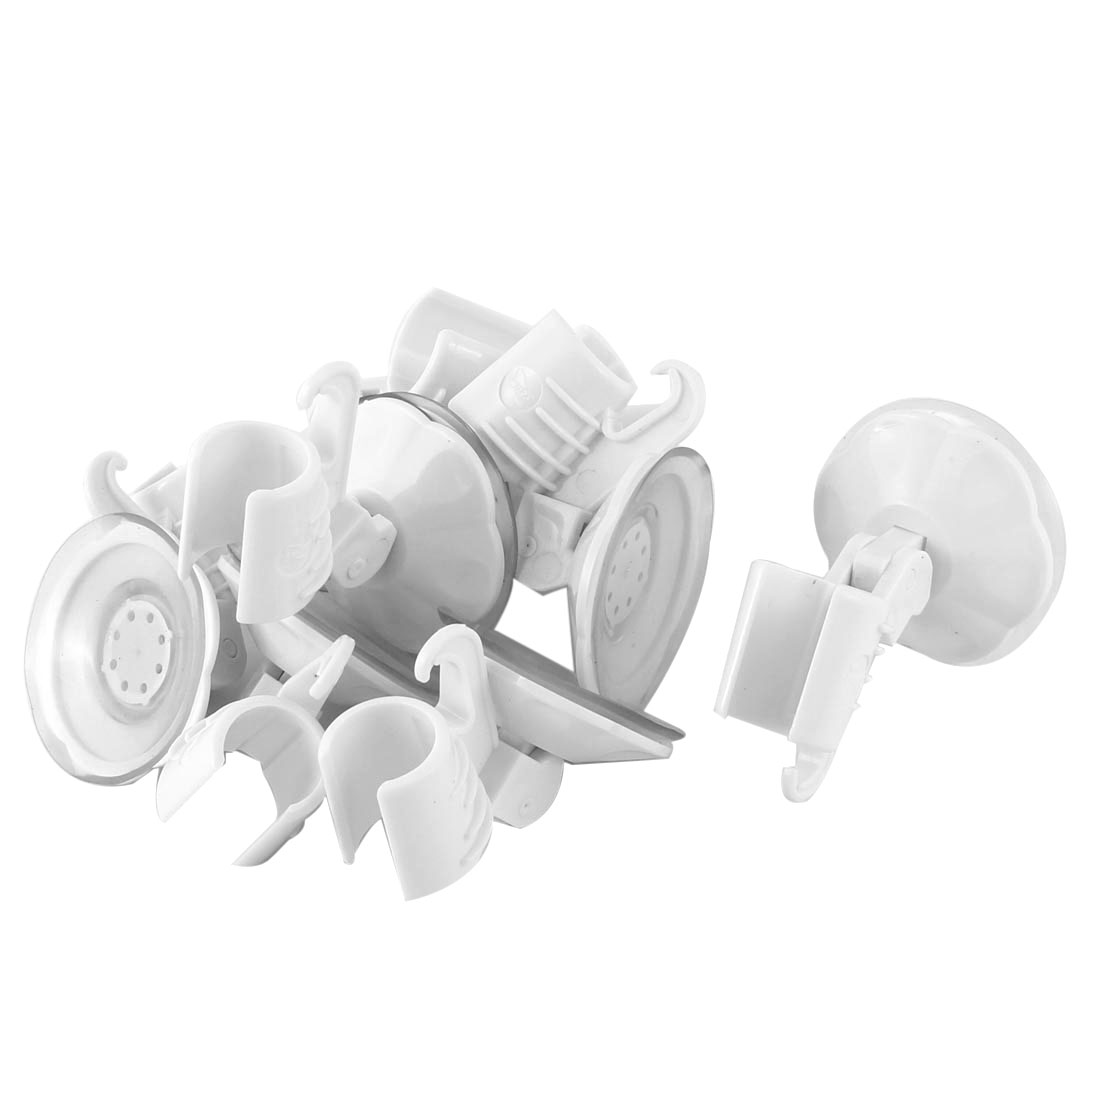 8pcs Attachable Bathroom Shower Head Holder Wall Suction Cup Bracket White